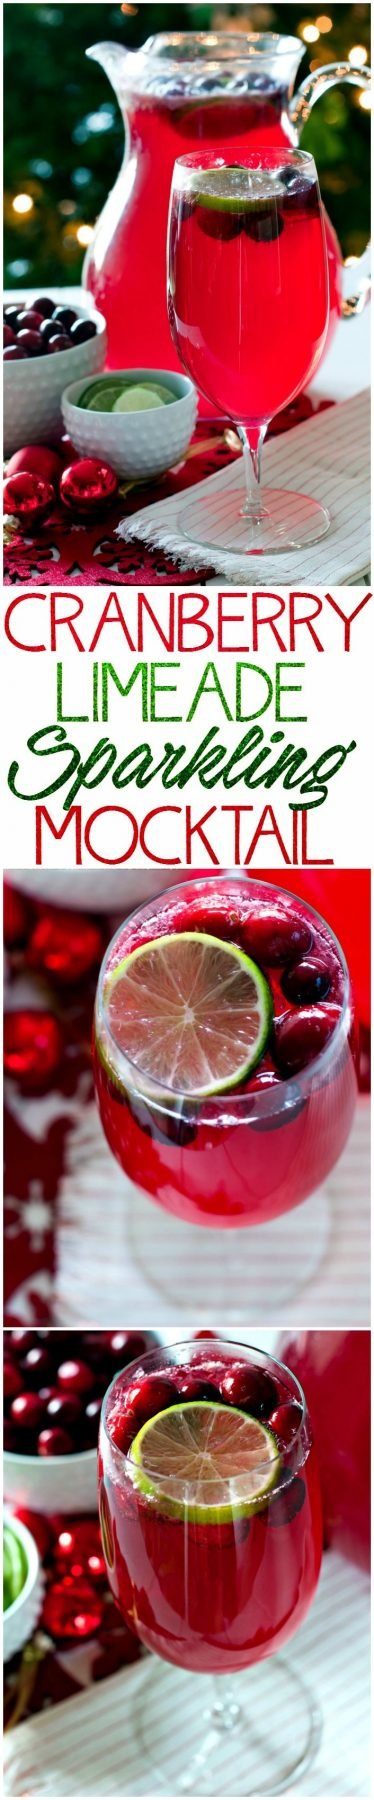 Make this Cranberry Limeade Sparkling Mocktail for your next holiday party. It's to perfect festive mocktail for Christmas and New Year's!